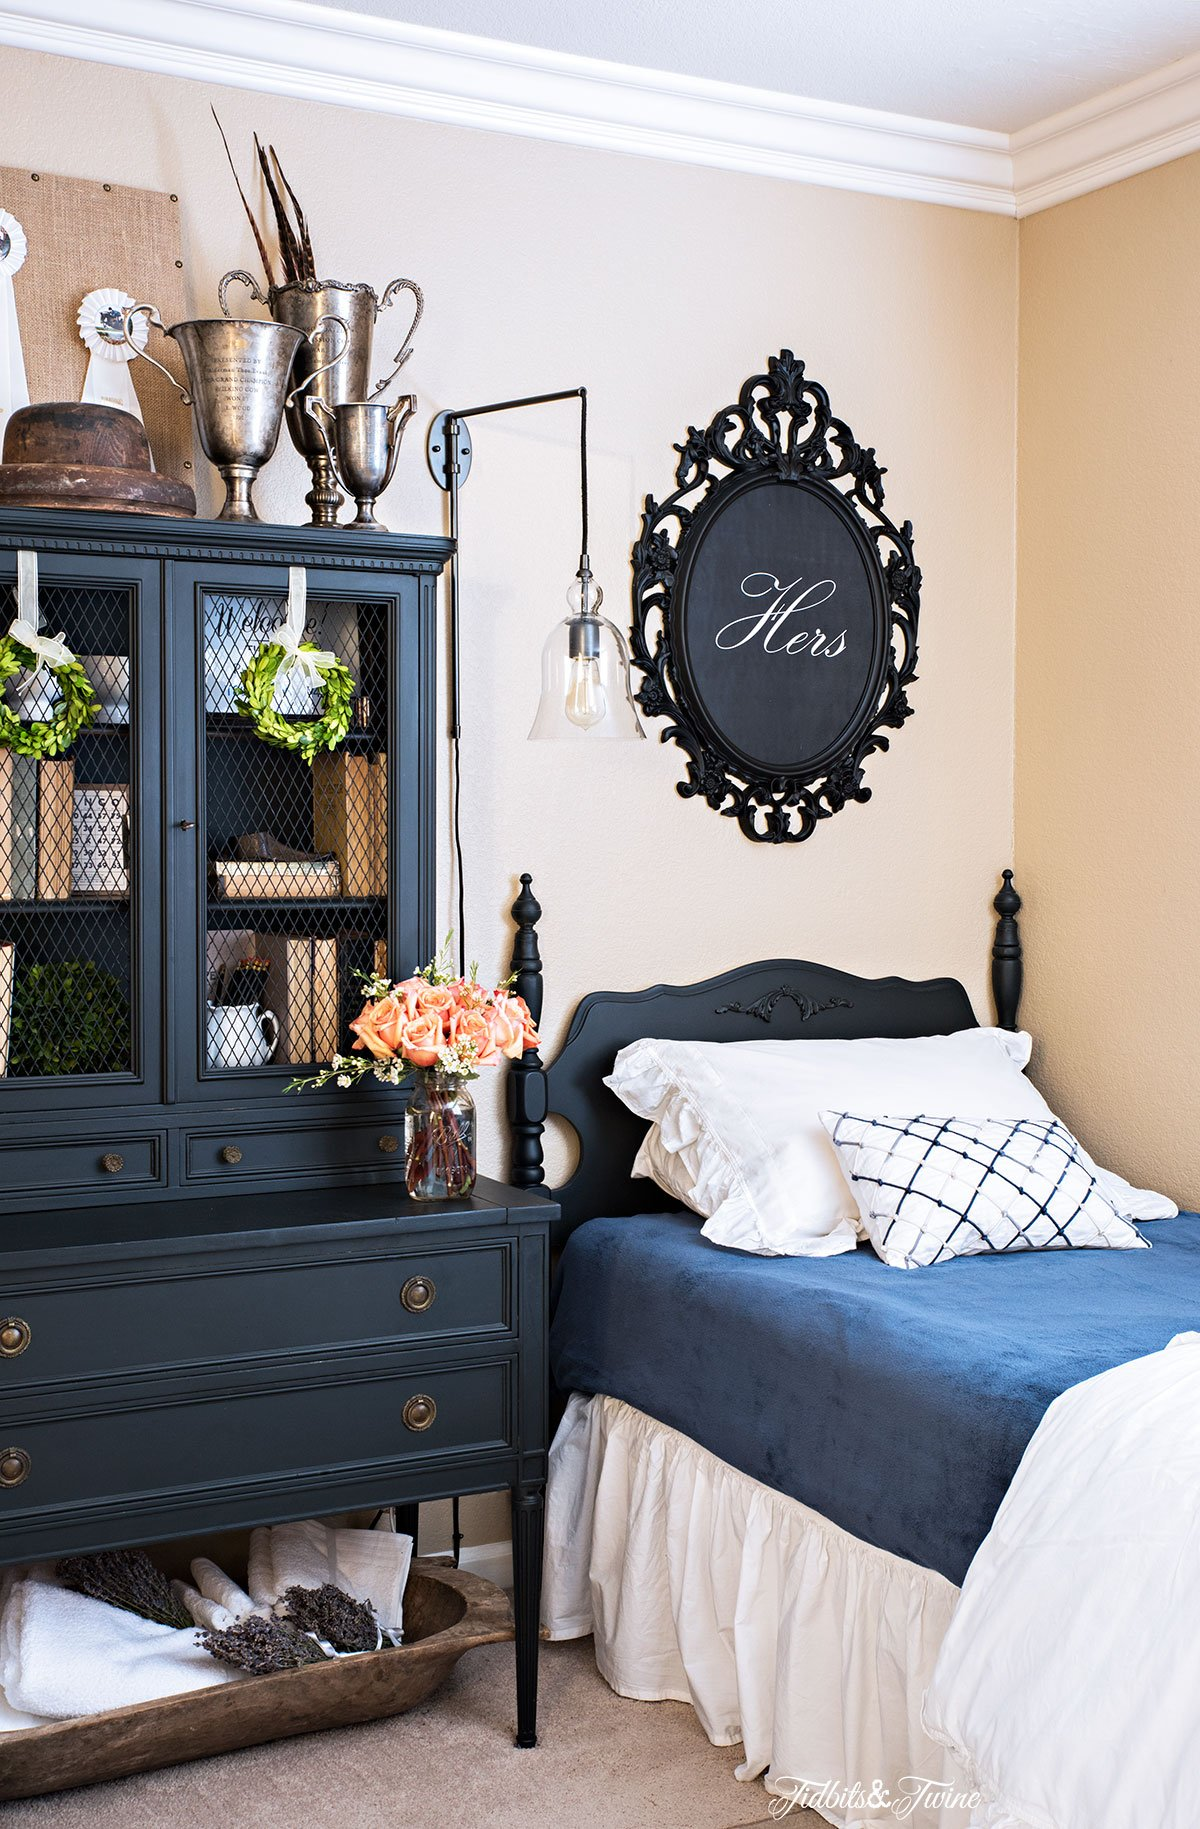 black antique bed with blue and white bedding and black artwork above and black antique hutch with books and trophies